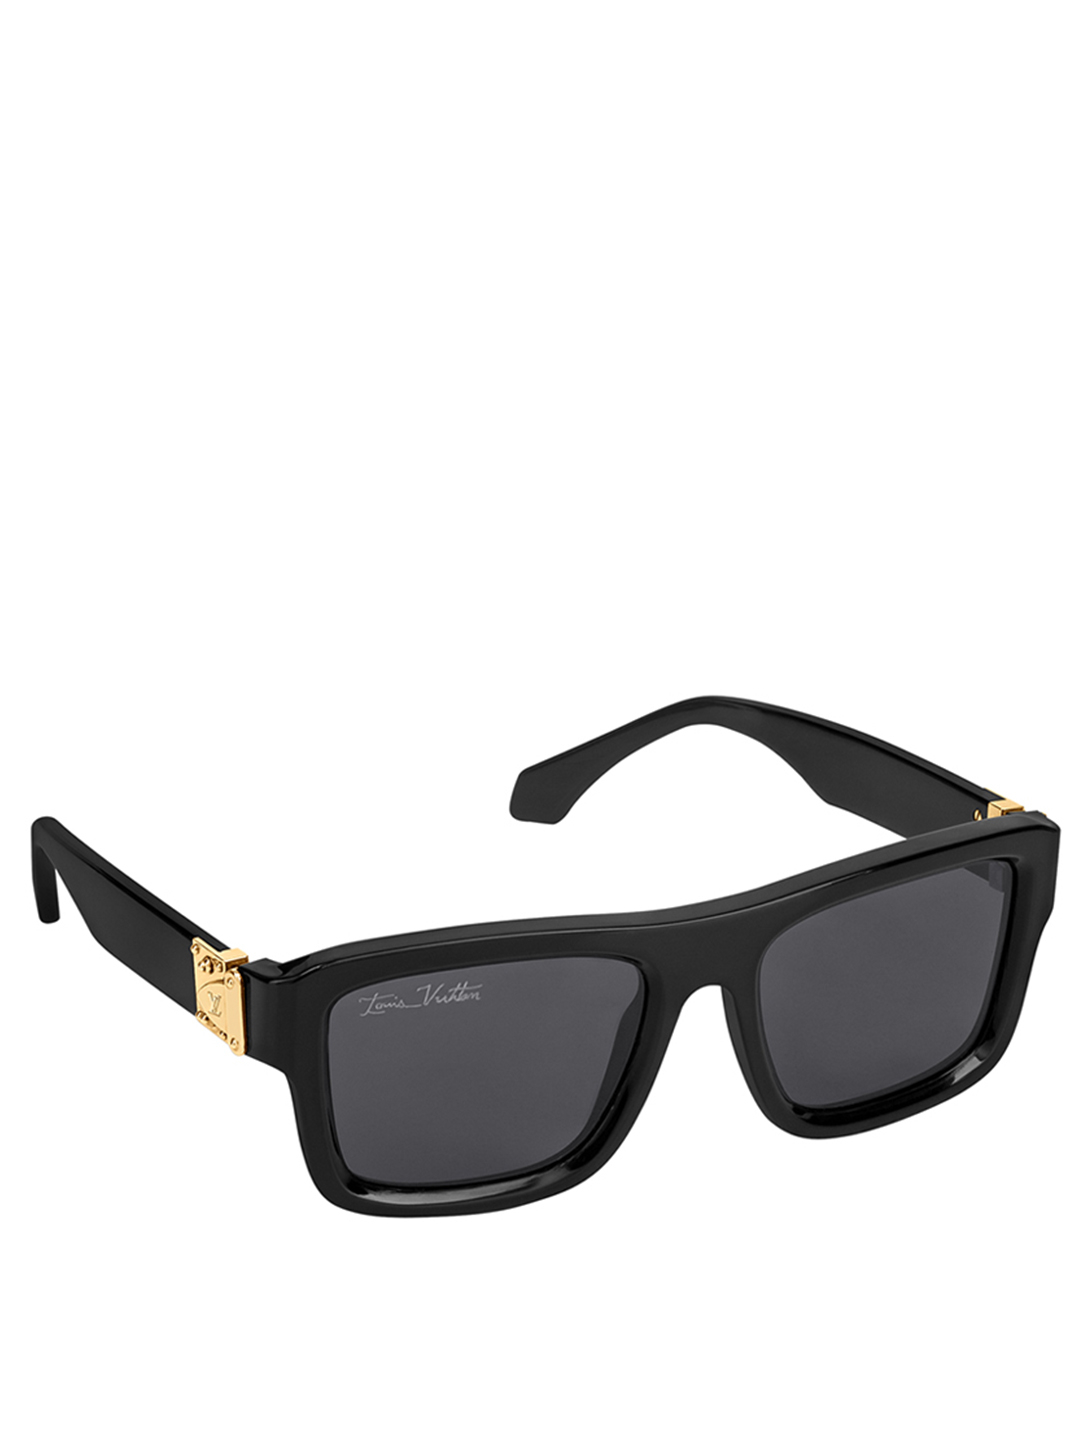 LOUIS VUITTON LV City Sunglasses Designers